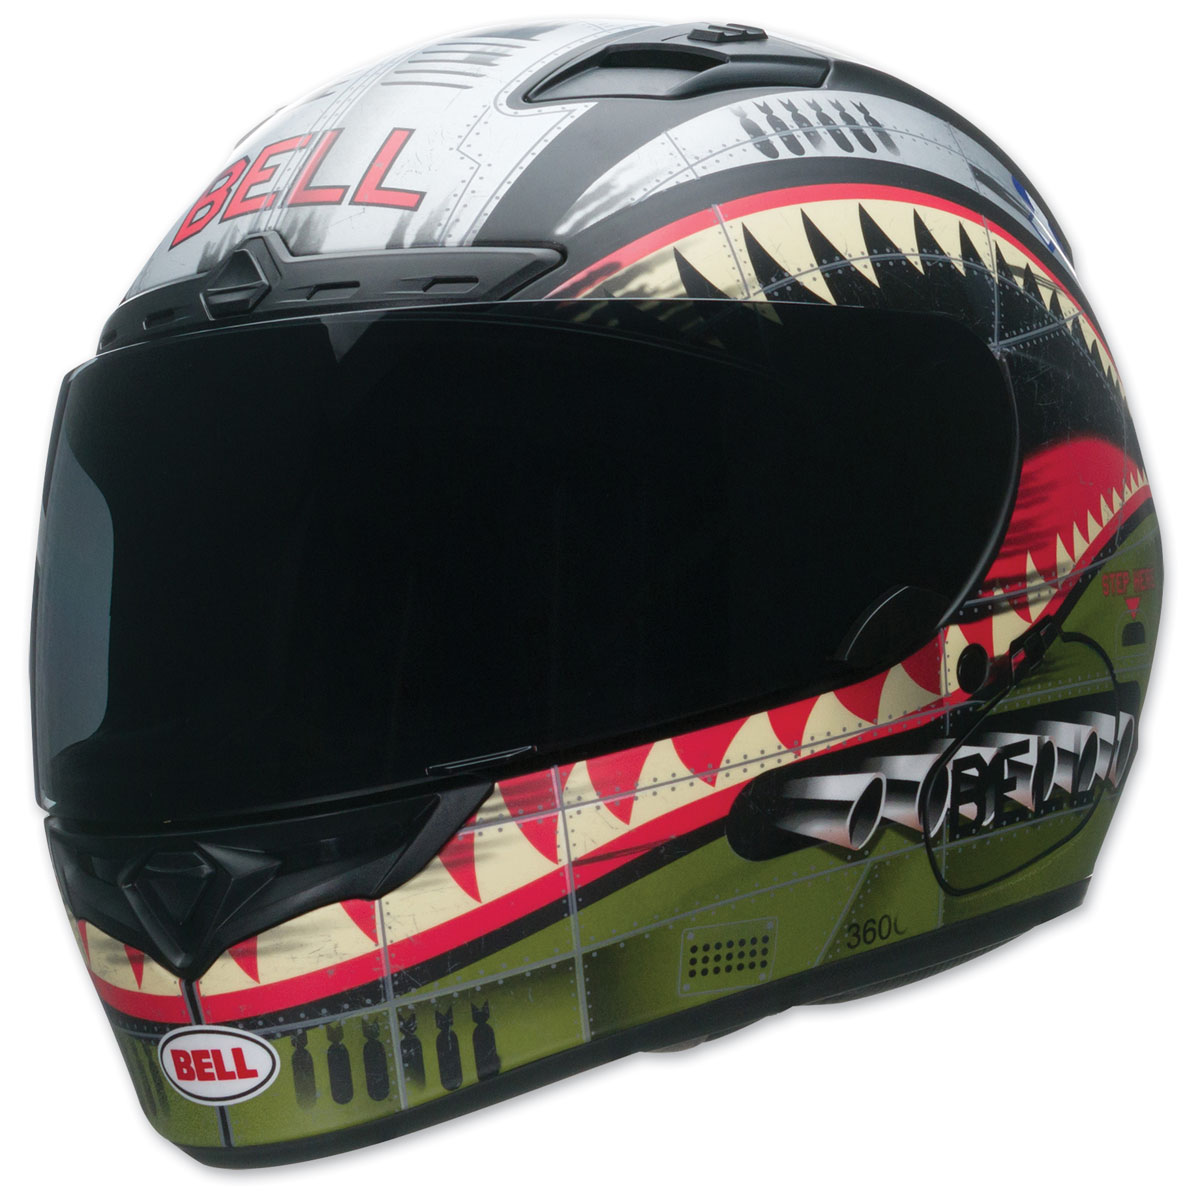 Bell Qualifier DLX MIPS Devil May Care Full Face Helmet